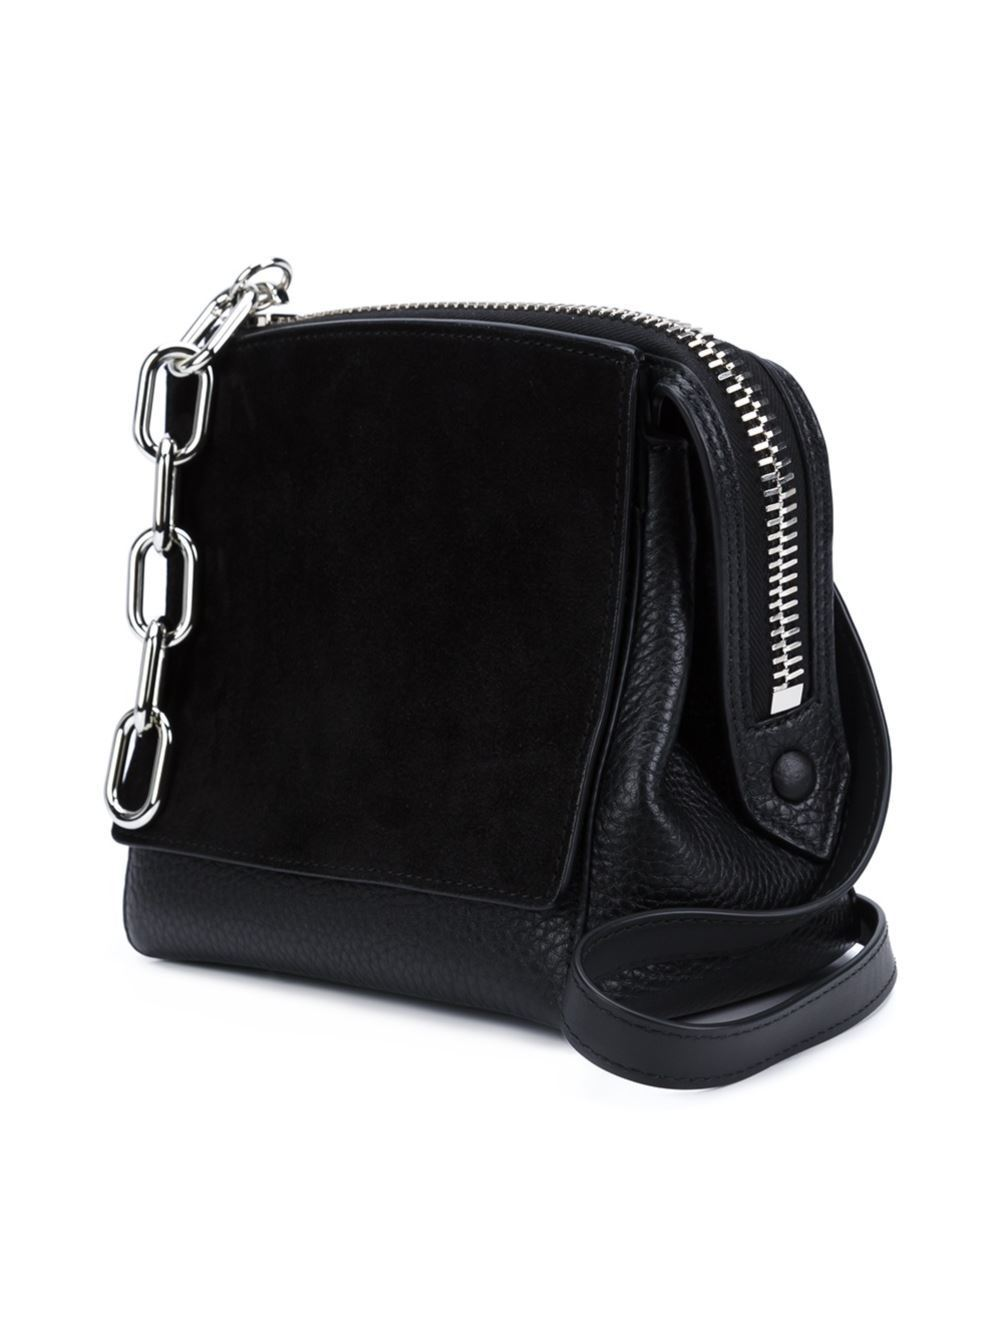 ALEXANDER WANG Attica Flap Marion 斜めがけバッグ 20R0395 ◇